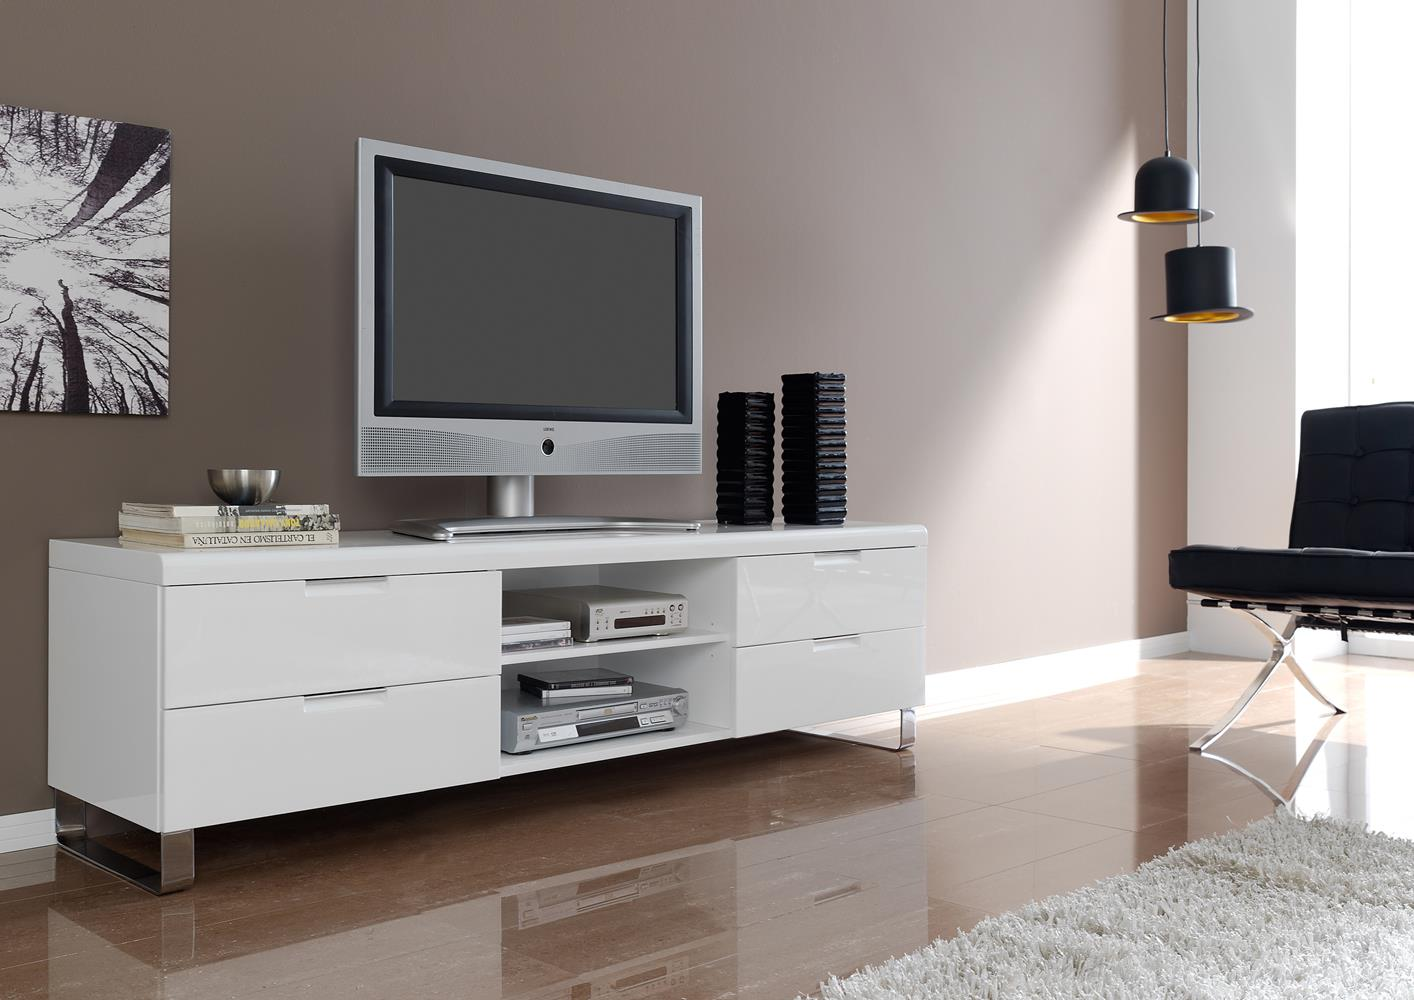 acheter votre meuble t l contemporain laqu blanc pied chrom chez simeuble. Black Bedroom Furniture Sets. Home Design Ideas